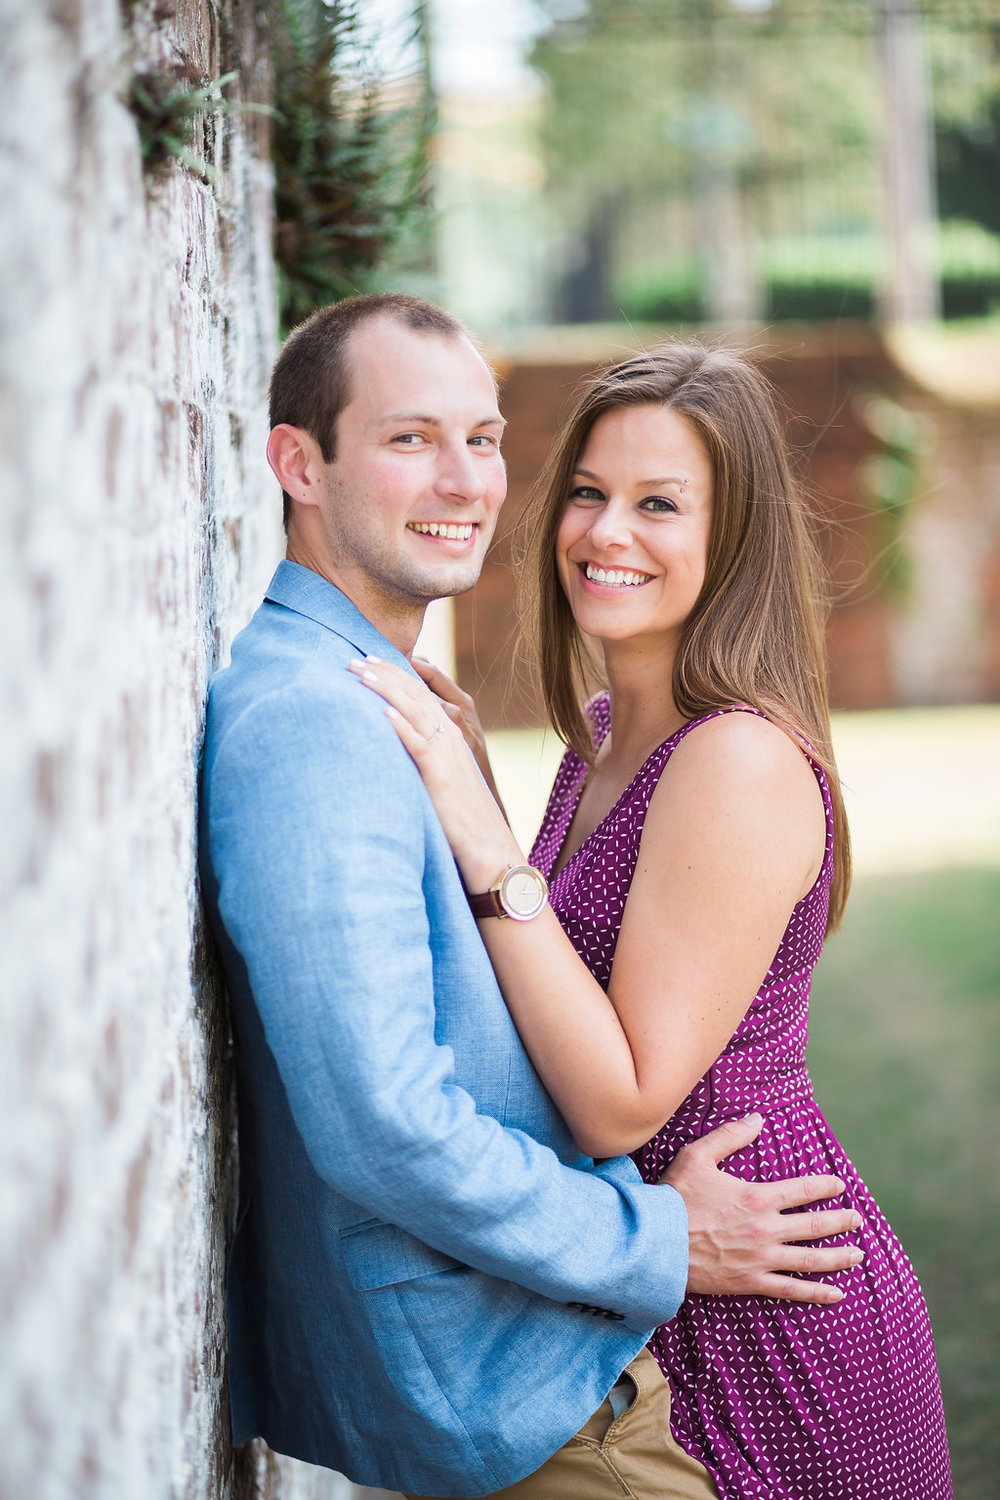 engagement-session-at-the-georgia-state-railroad-museum